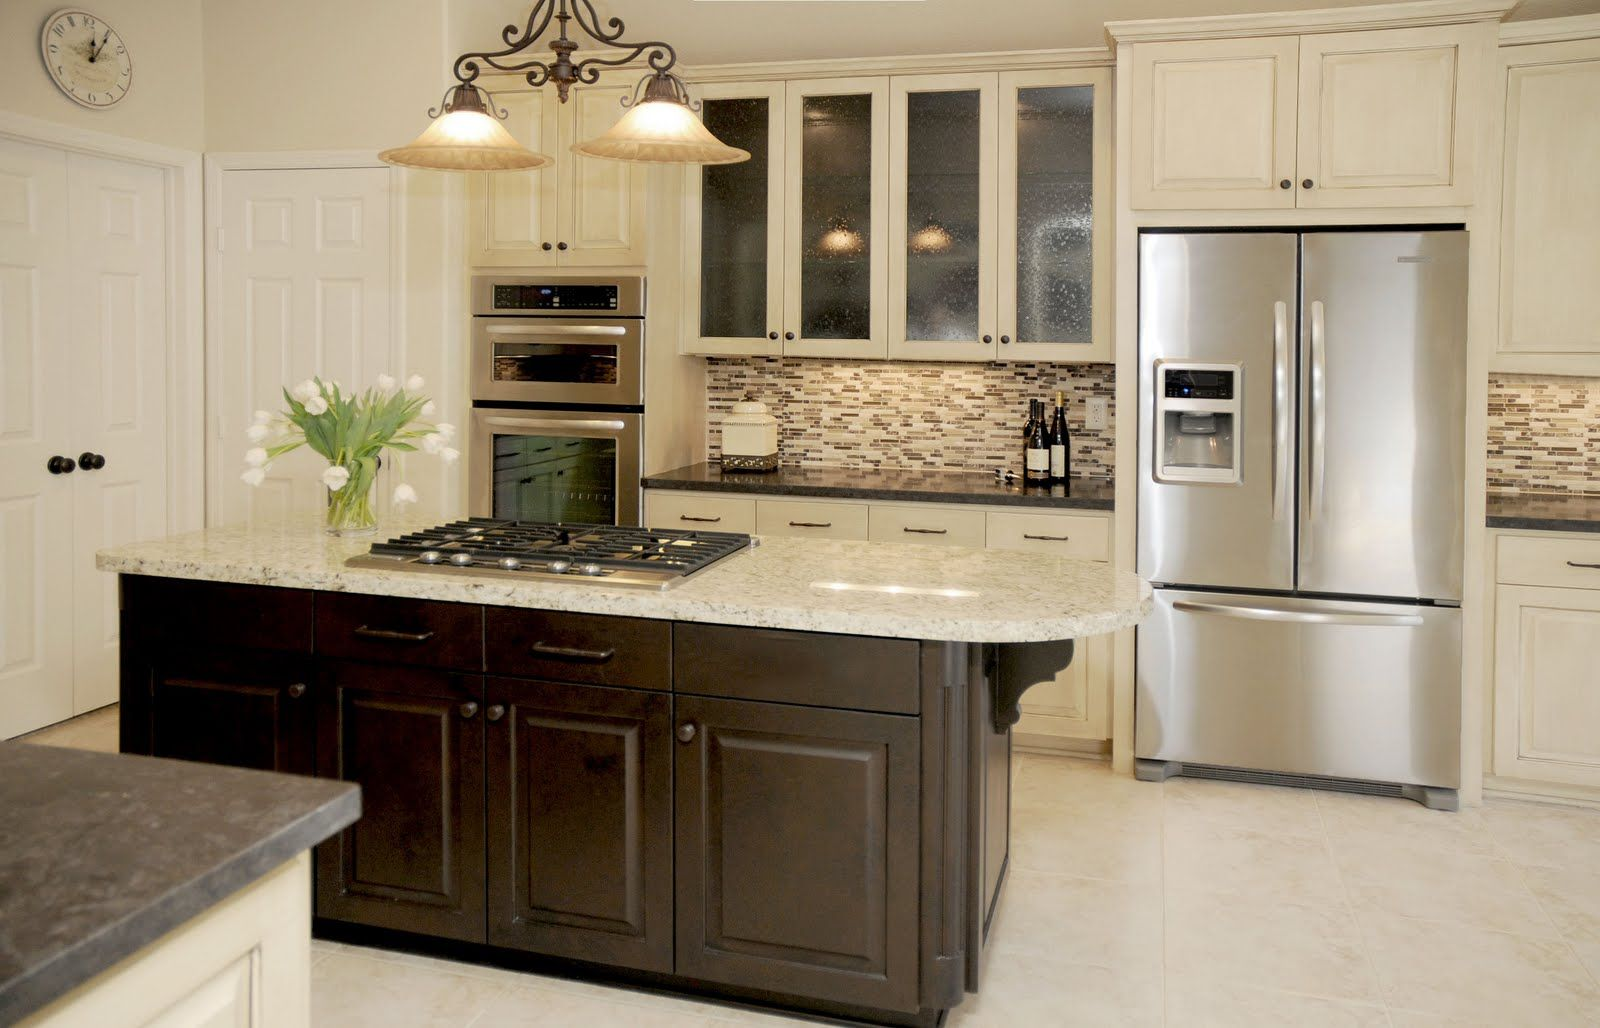 Bathroom Furniture Ideas To Remodel Kitchen kitchen remodels before and after photos pinterest kitchens remodeled remodeling ideas